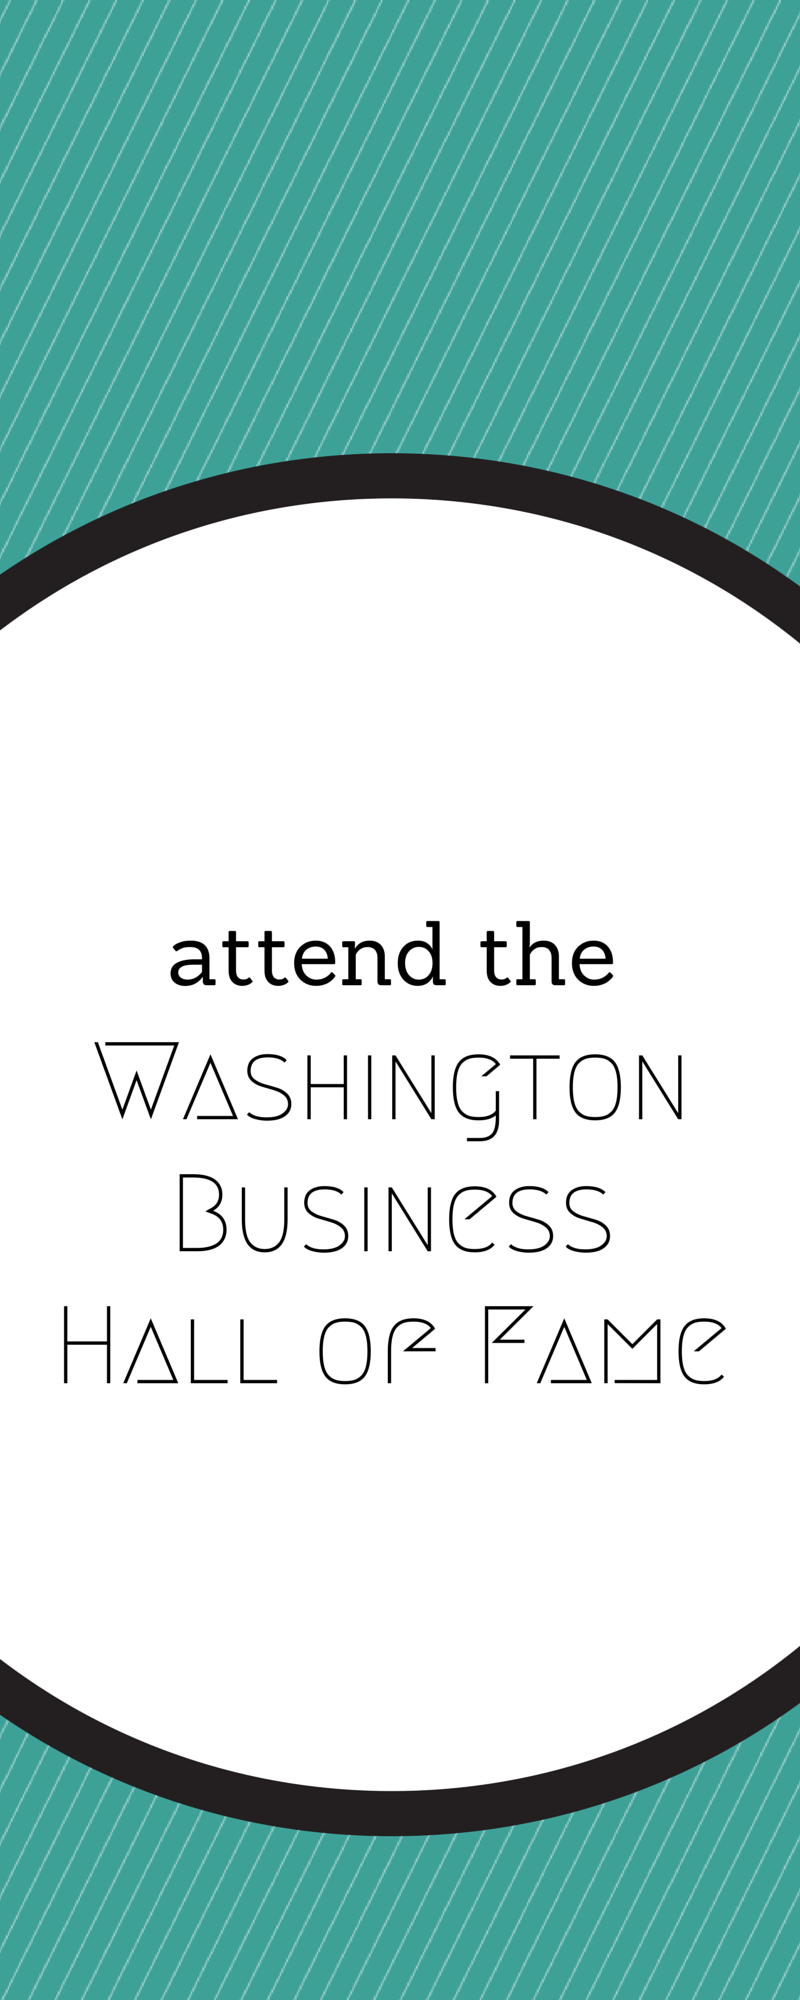 The Washington Business Hall of Fame honors Washington's best-in-business to benefit our region's next-in-business. Several sponsorship opportunities are available.